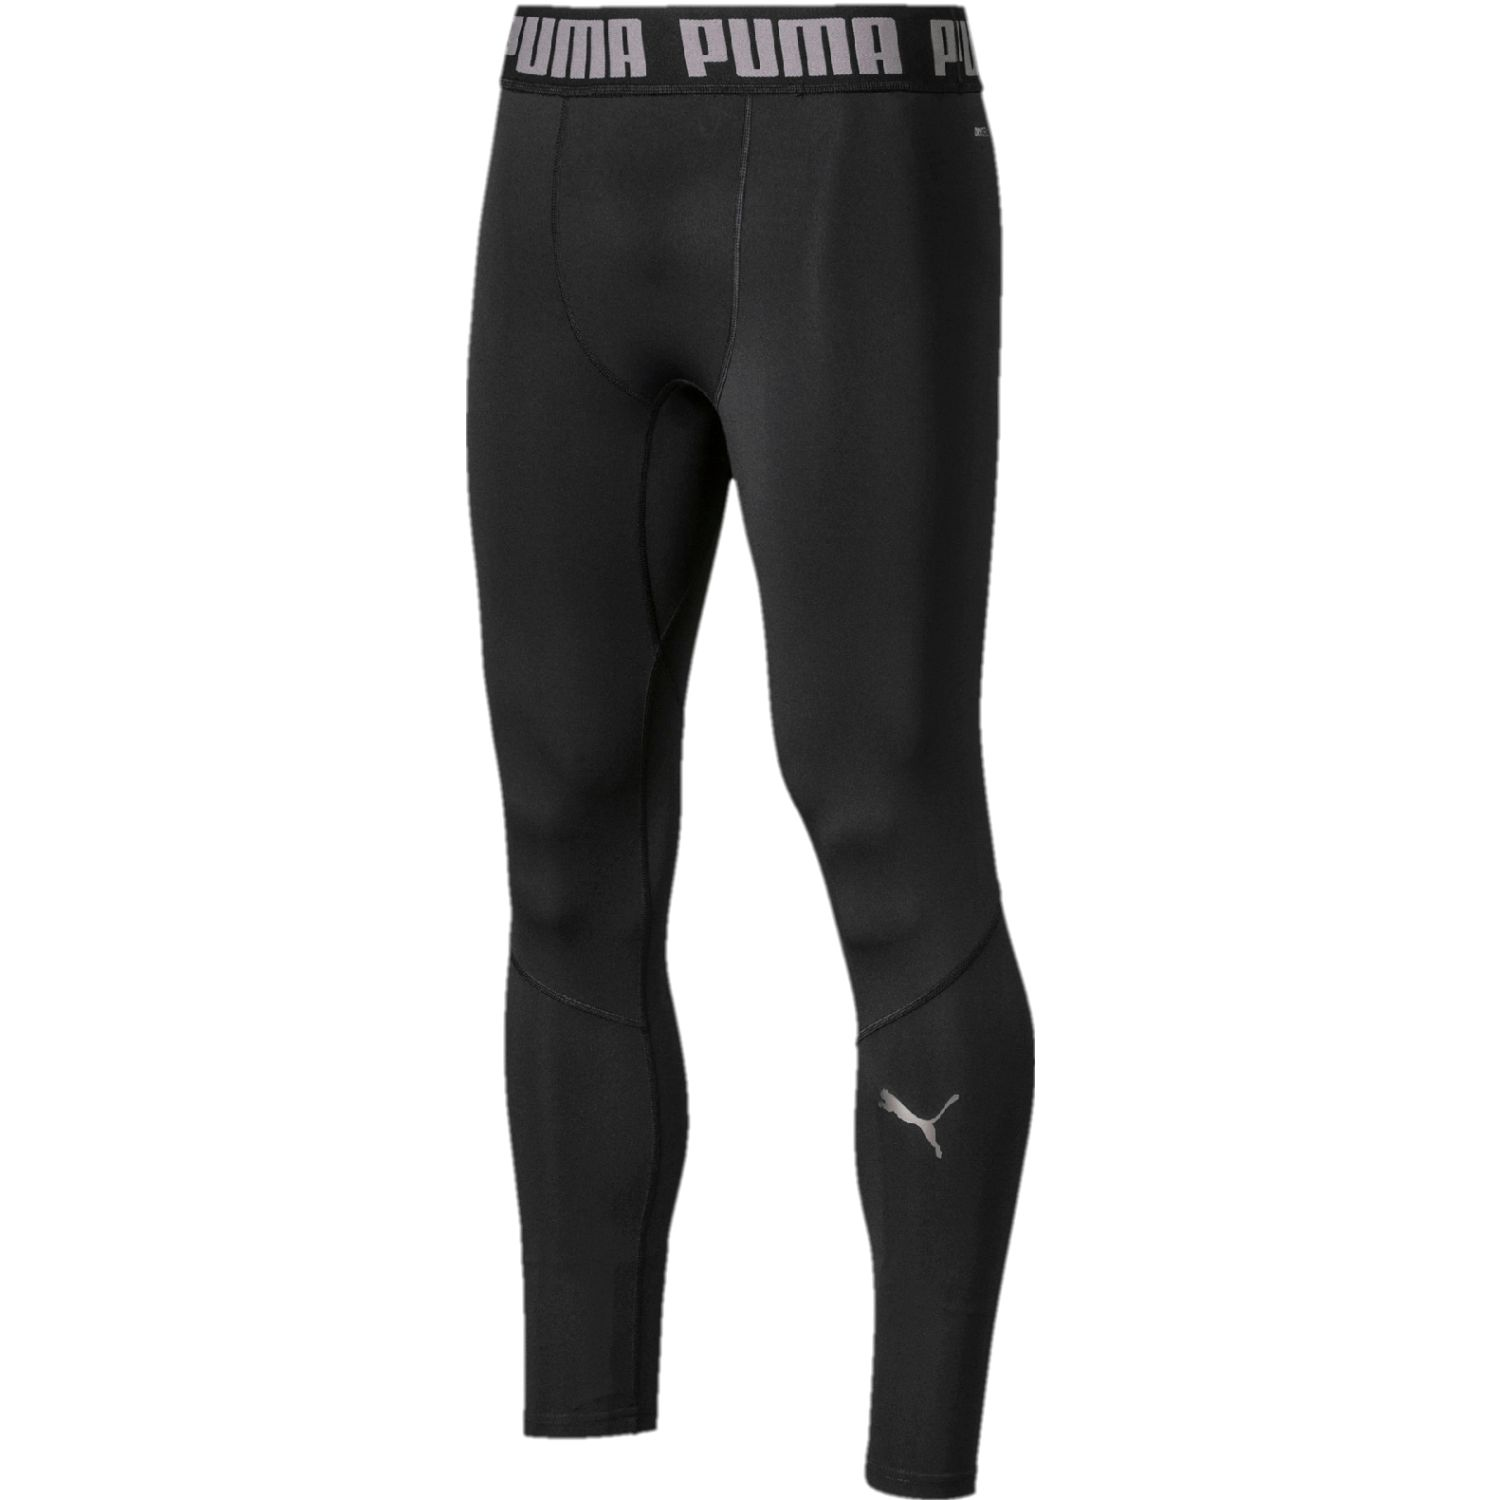 Puma puma bnd long tight Negro / blanco Pantalones Deportivos